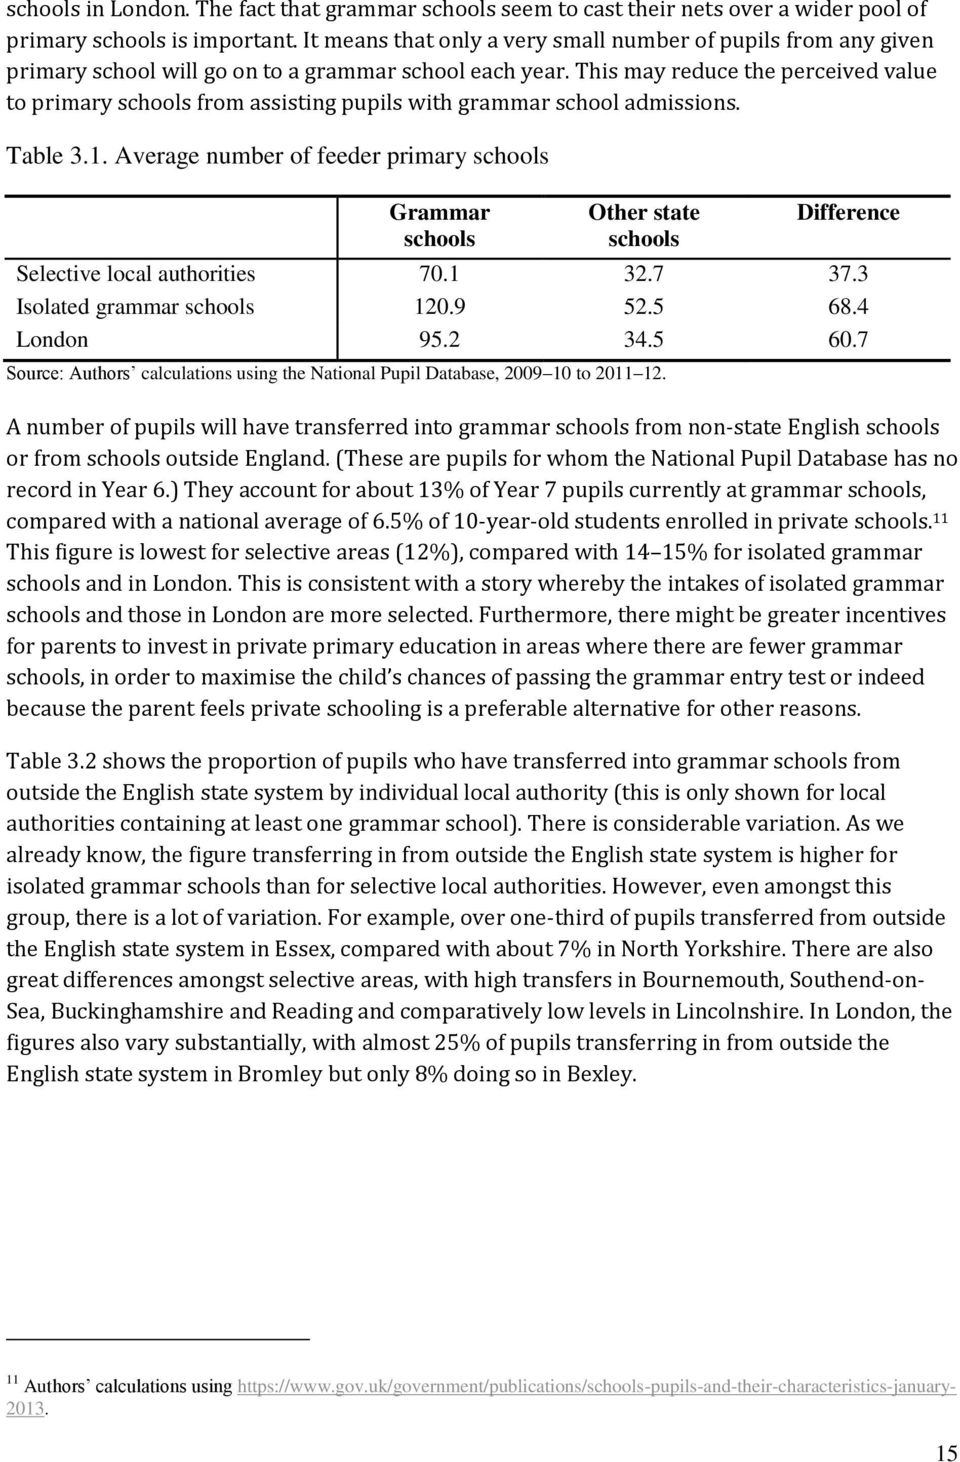 This may reduce the perceived value to primary schools from assisting pupils with grammar school admissions. Table 3.1.